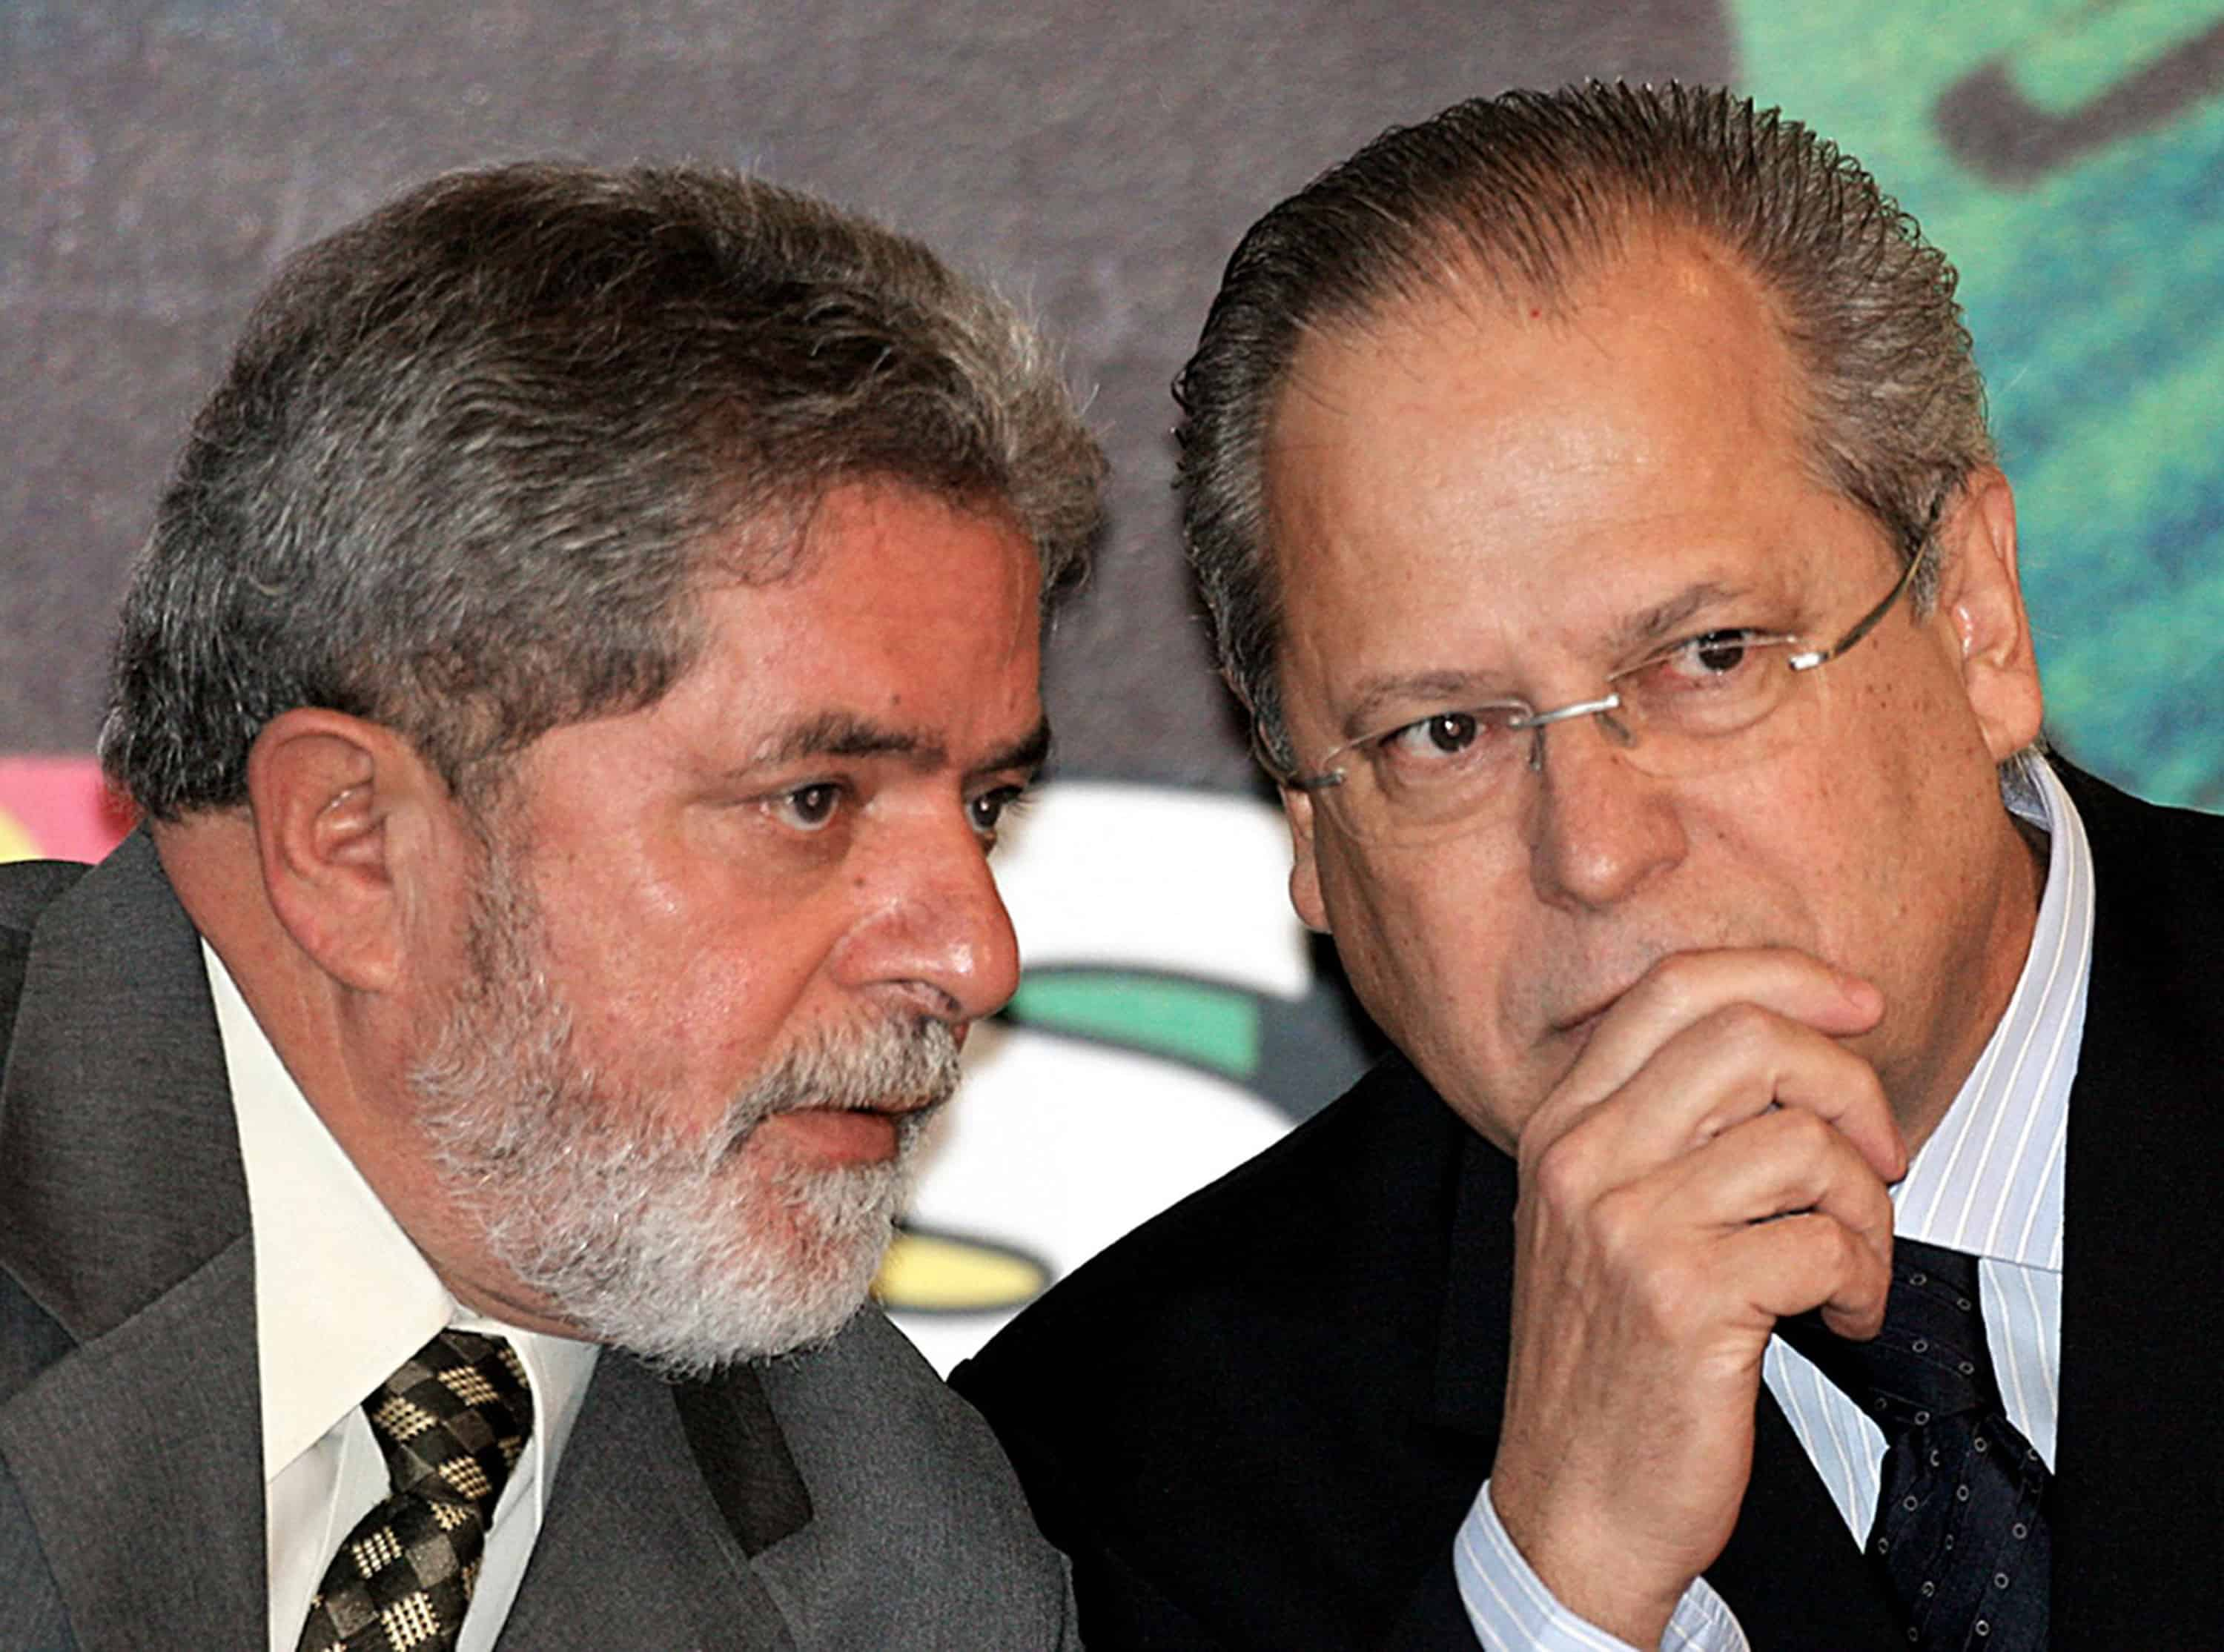 A file photo shows Brazil's ex-President Luiz Inácio Lula da Silva, left, speaking with his then-aide José Dirceu .